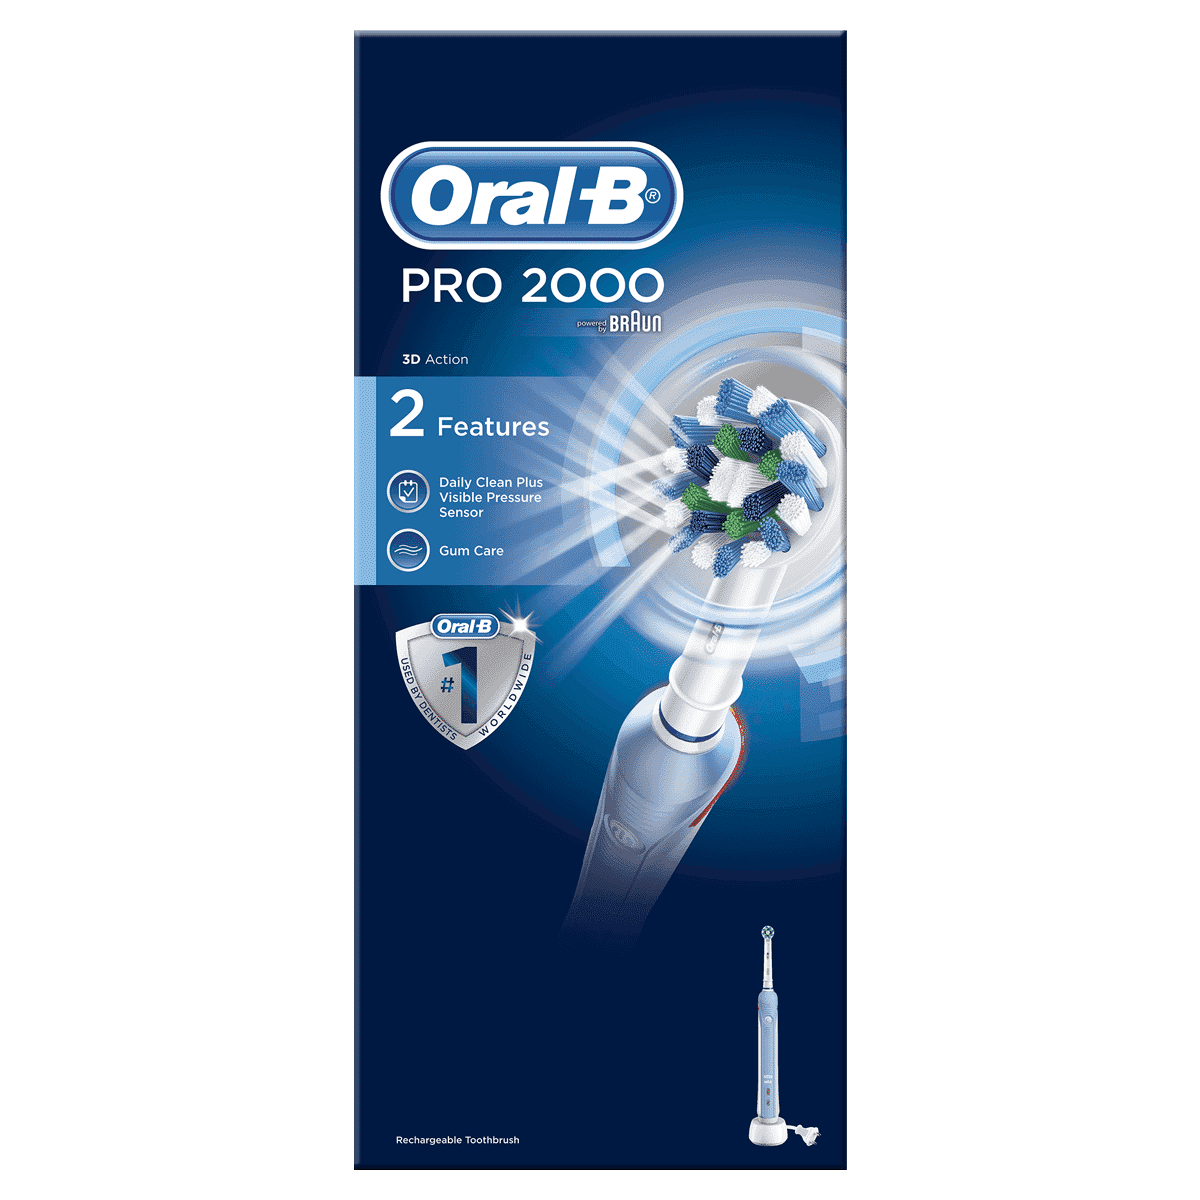 Oral-B PRO 2000 Crossaction Electric Toothbrush